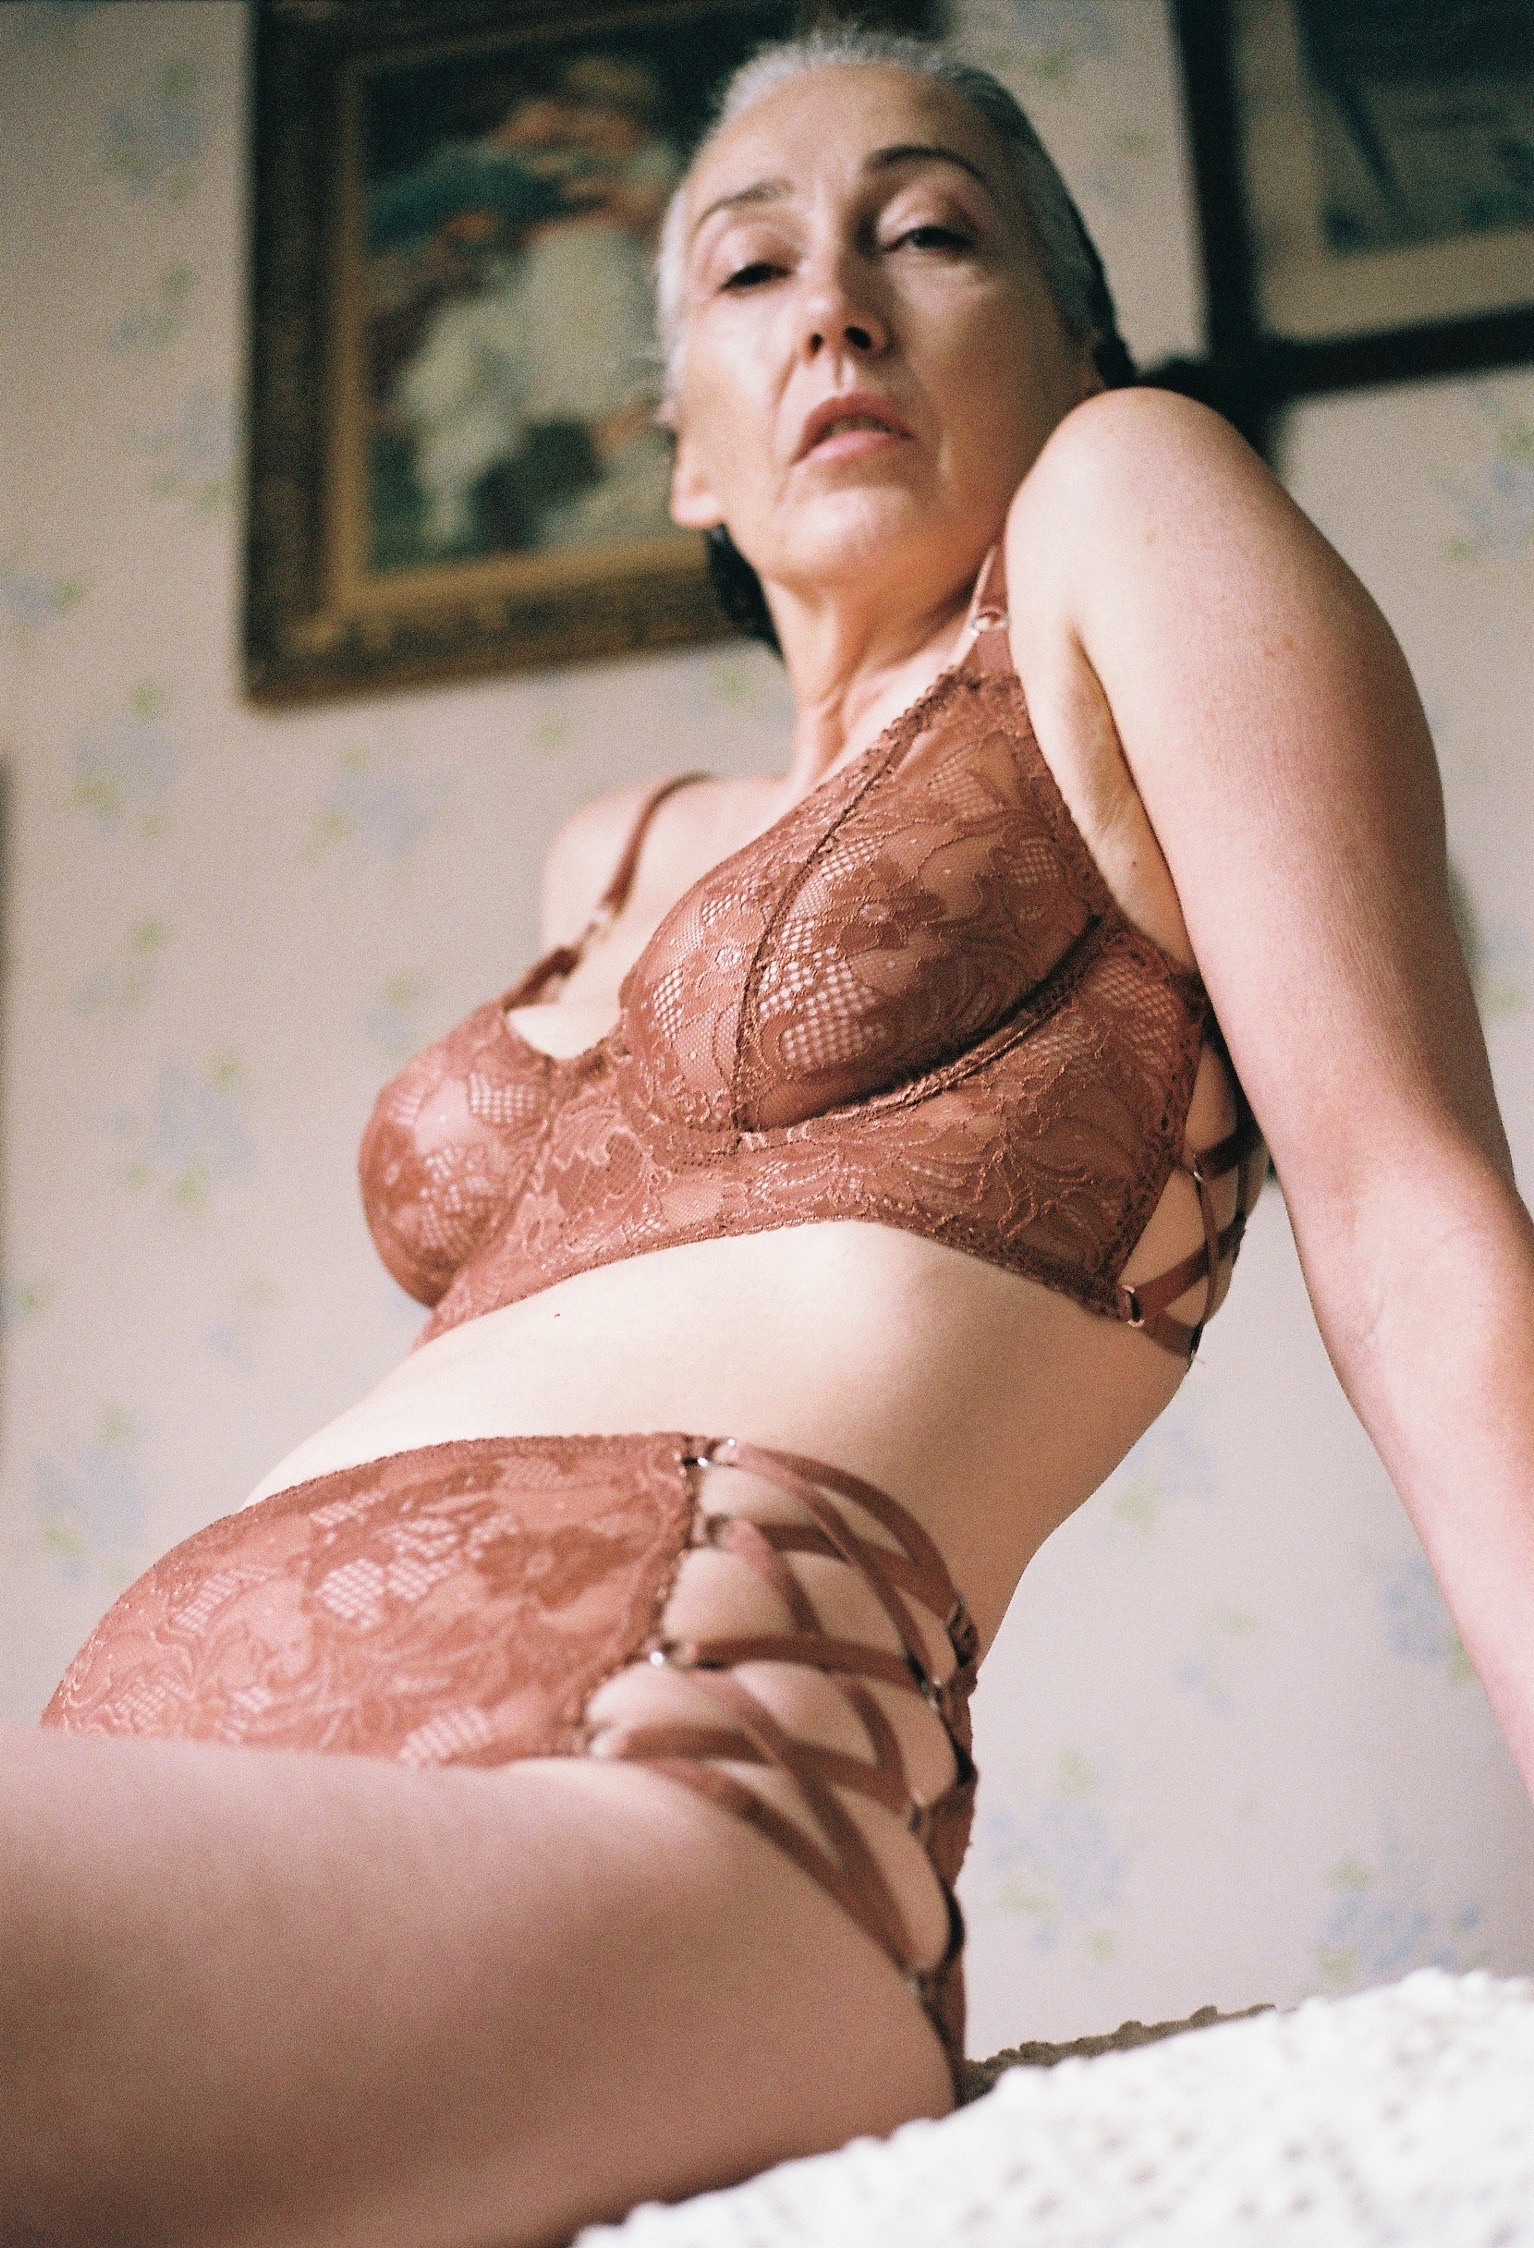 Mercy Brewer models in Lonely Lingerie's new campaign.  / LONELY LINGERIE